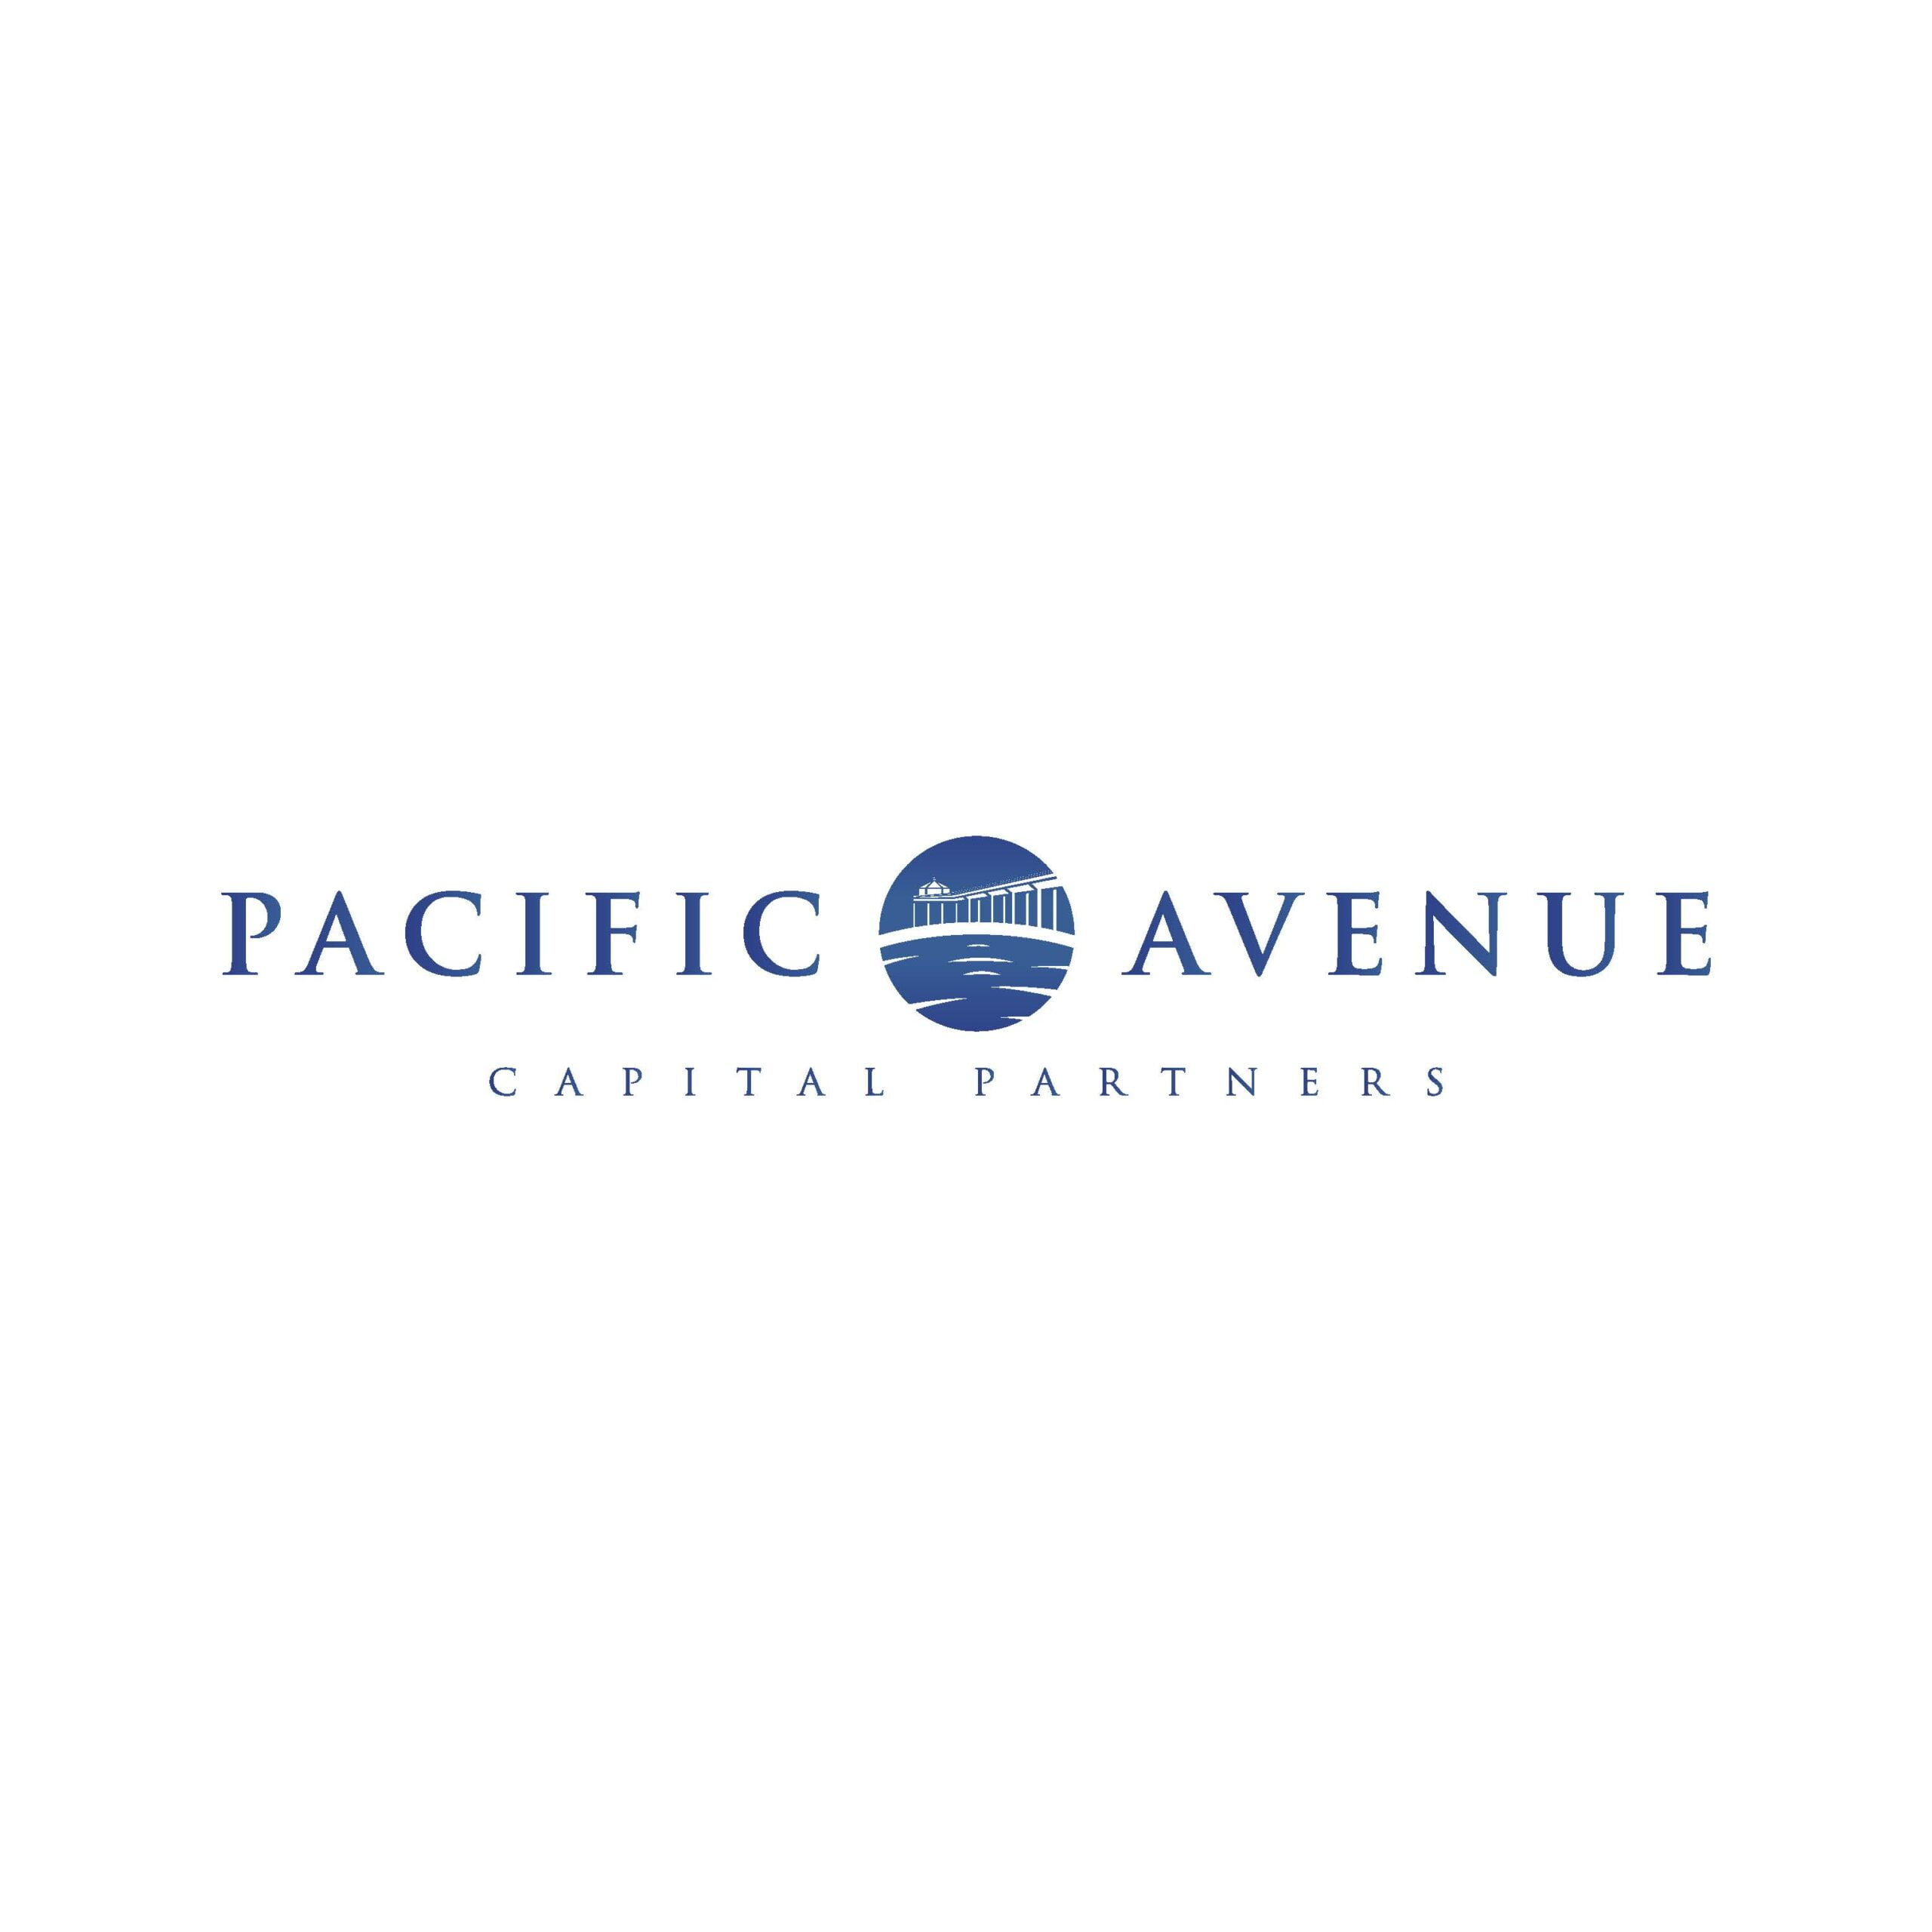 Pacific Avenue Capital Partners Announces That Allen Schaar and Chris Nealey Have Joined the Firm and Jack Marut Has Been Promoted to Vice President